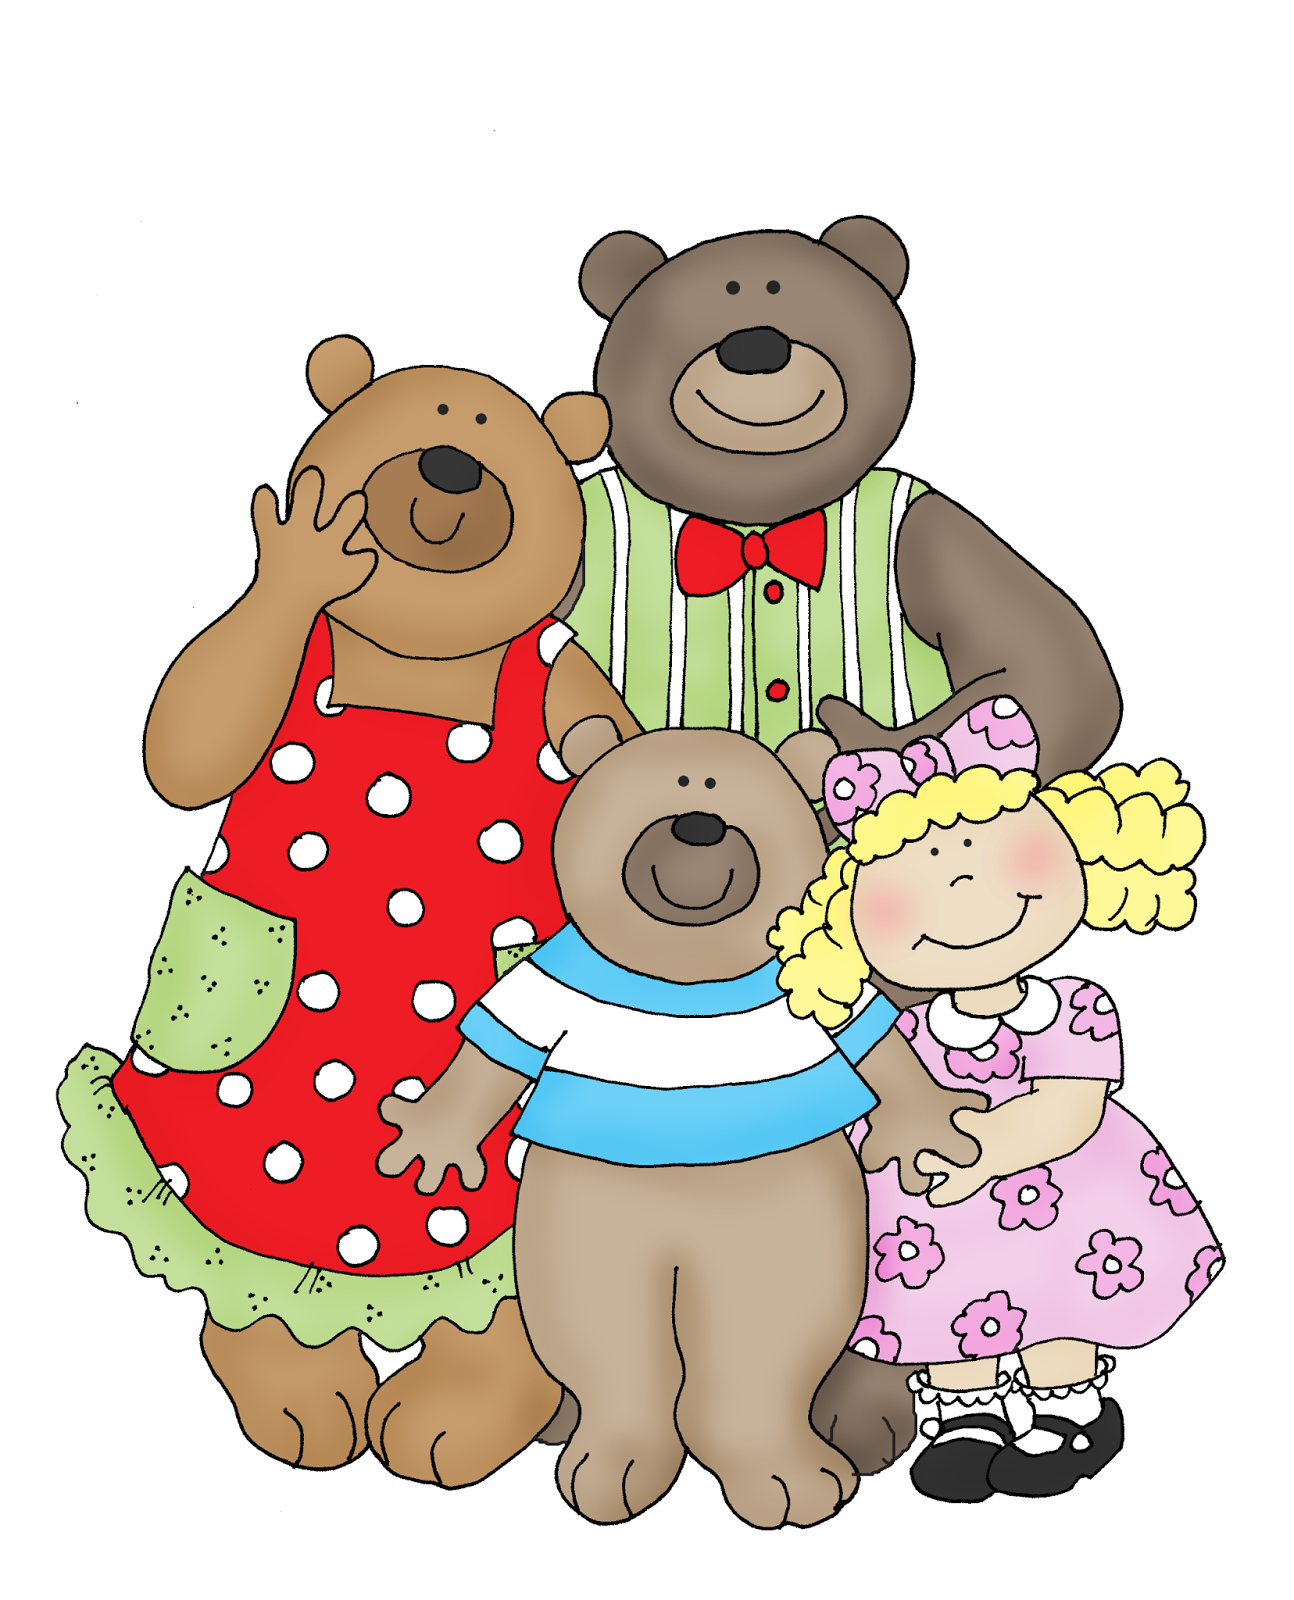 Goldilocks and three bears clipart image free Goldilocks and the Three Bears | house mouse in color for card ... image free